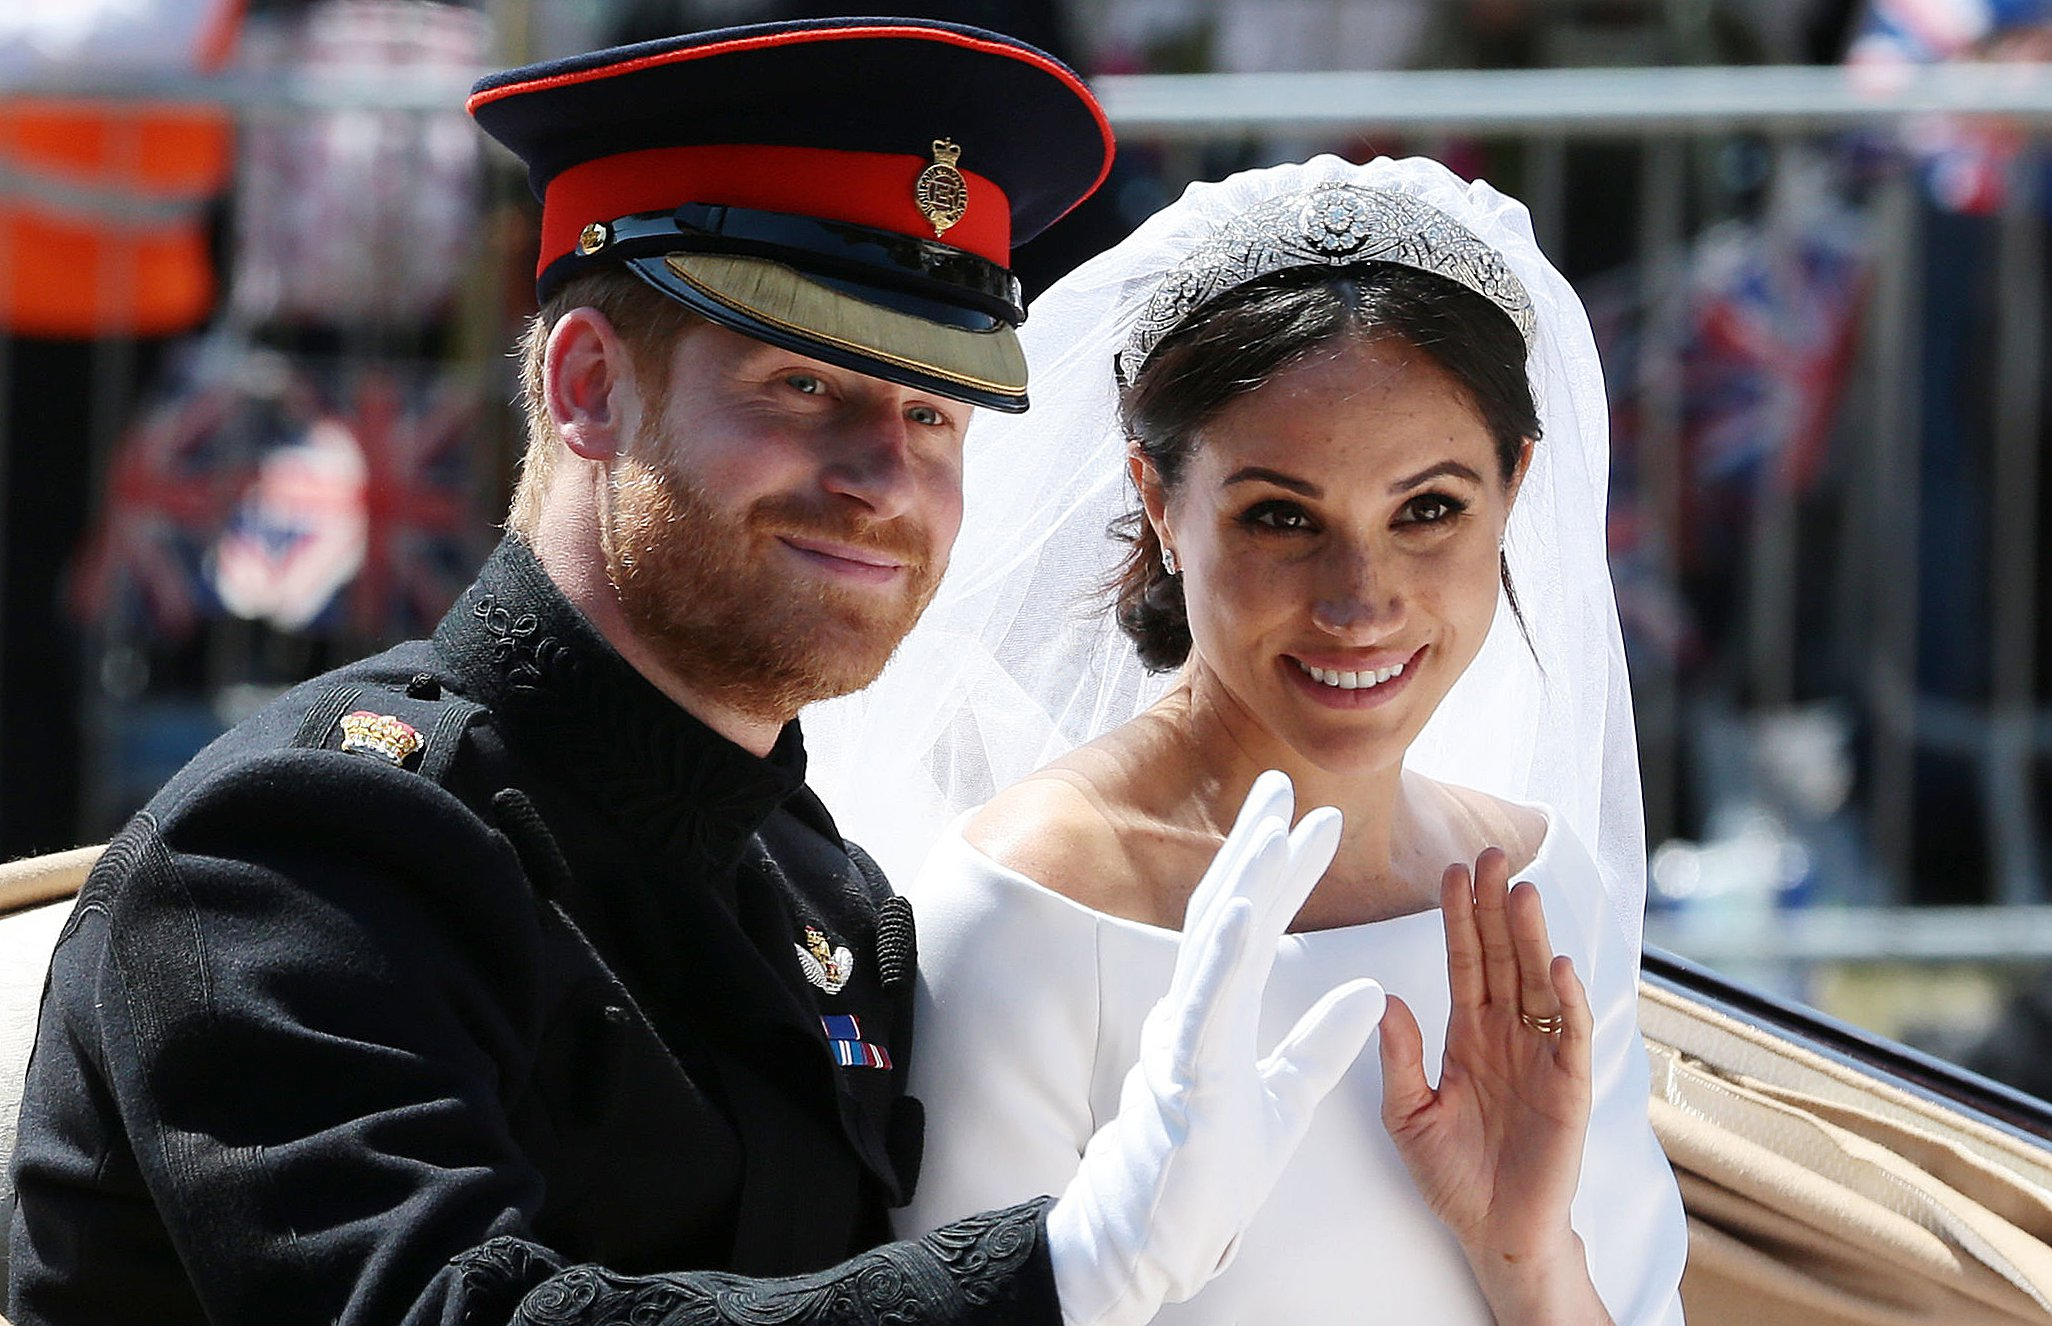 TOPSHOT - Britain's Prince Harry, Duke of Sussex and his wife Meghan, Duchess of Sussex wave from the Ascot Landau Carriage during their carriage procession on the Long Walk as they head back towards Windsor Castle in Windsor, on May 19, 2018 after their wedding ceremony. (Photo by Aaron Chown / POOL / AFP) (Photo credit should read AARON CHOWN/AFP/Getty Images)